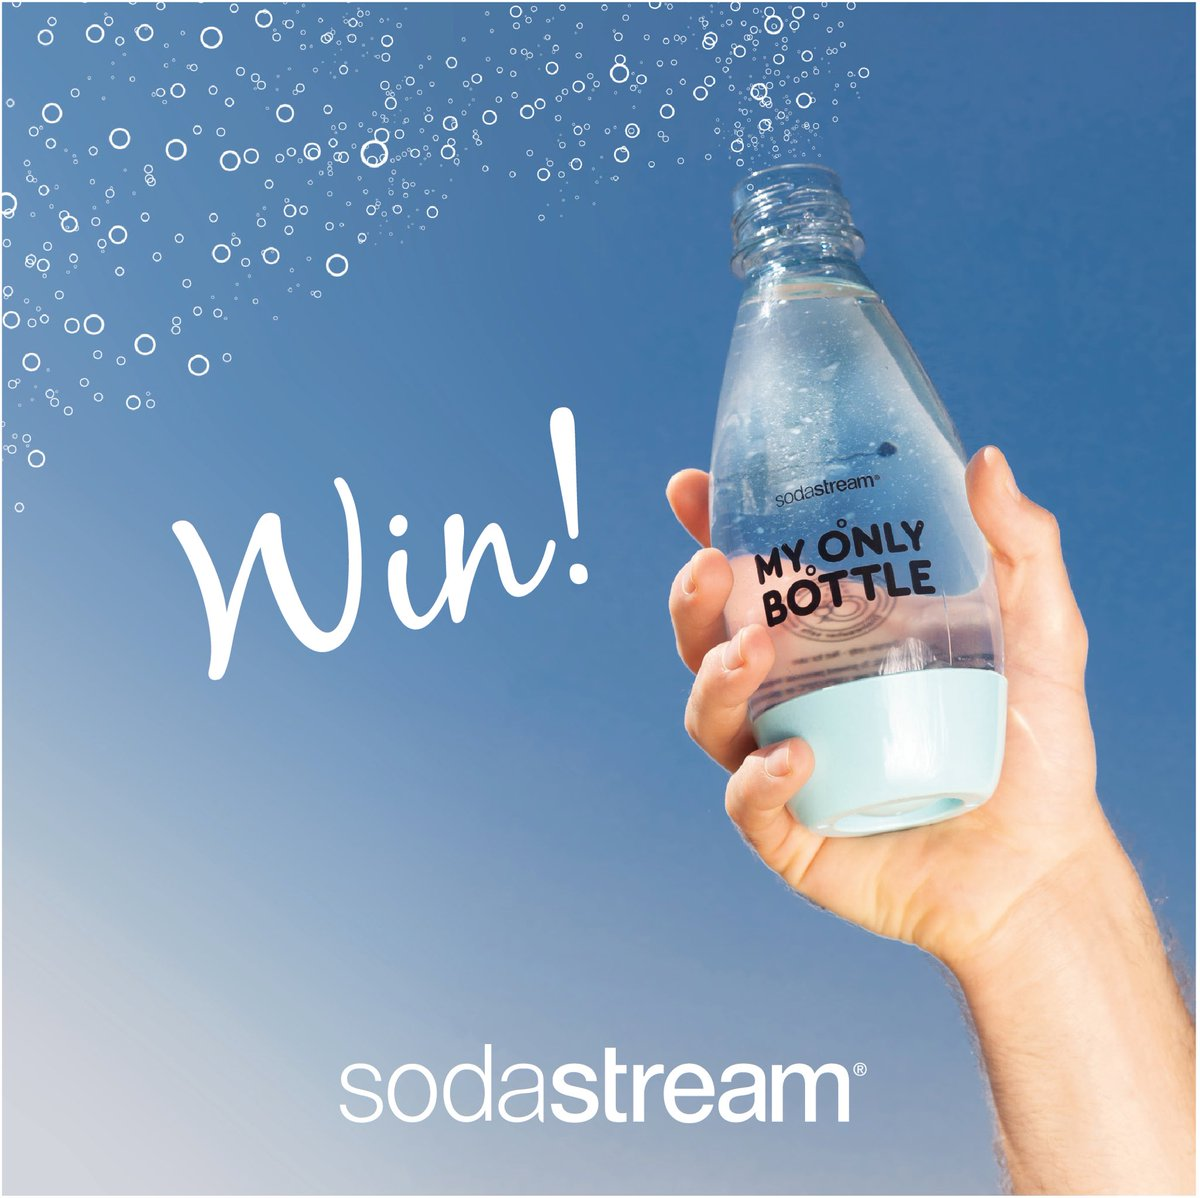 Wanna #WIN an exclusive invite to our exciting launch event in London?!🥳  All you need to do is: 1. Follow us @SodaStreamUK 2. RT this.  Get your athleisure ready - we'll be choosing 5 lucky winners!  Competition closes Monday. Must be available Thursday 25th July. T&C's apply.